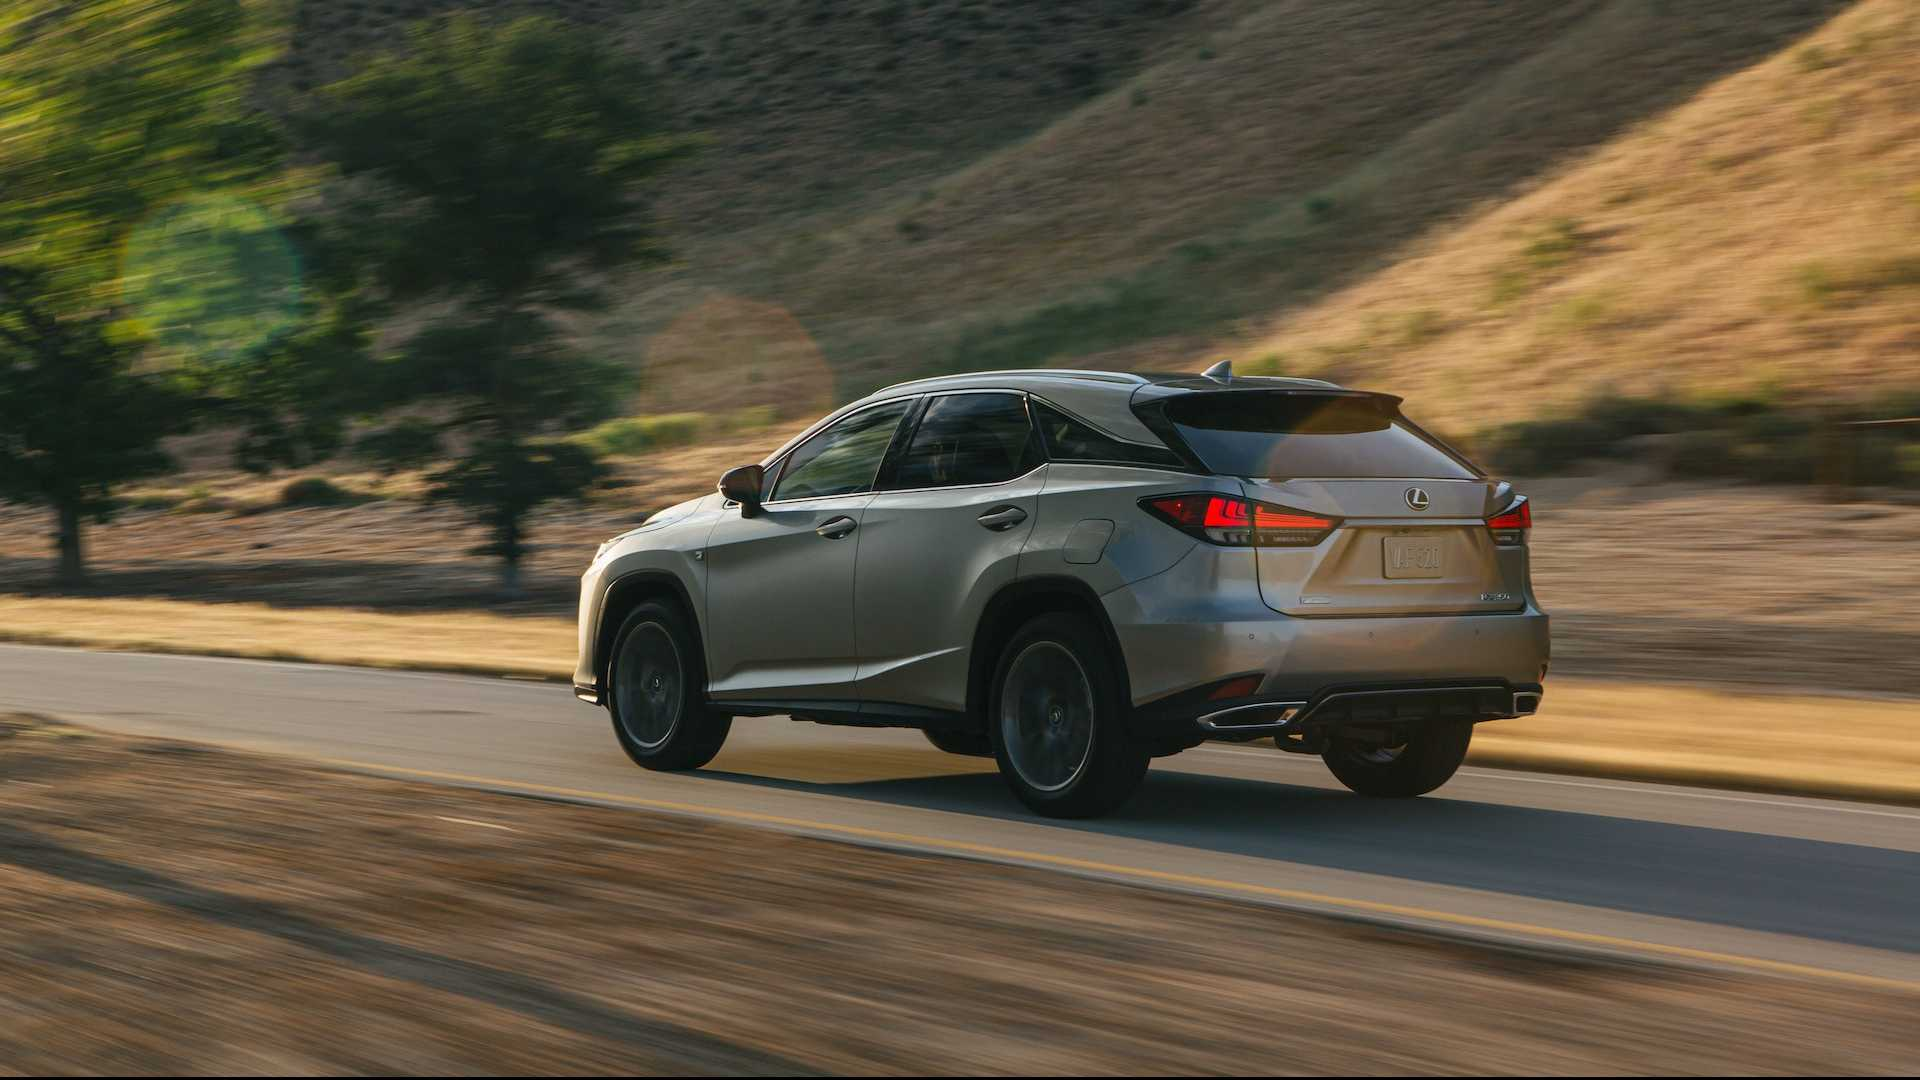 51 The Lexus Rx 2020 Facelift Pricing